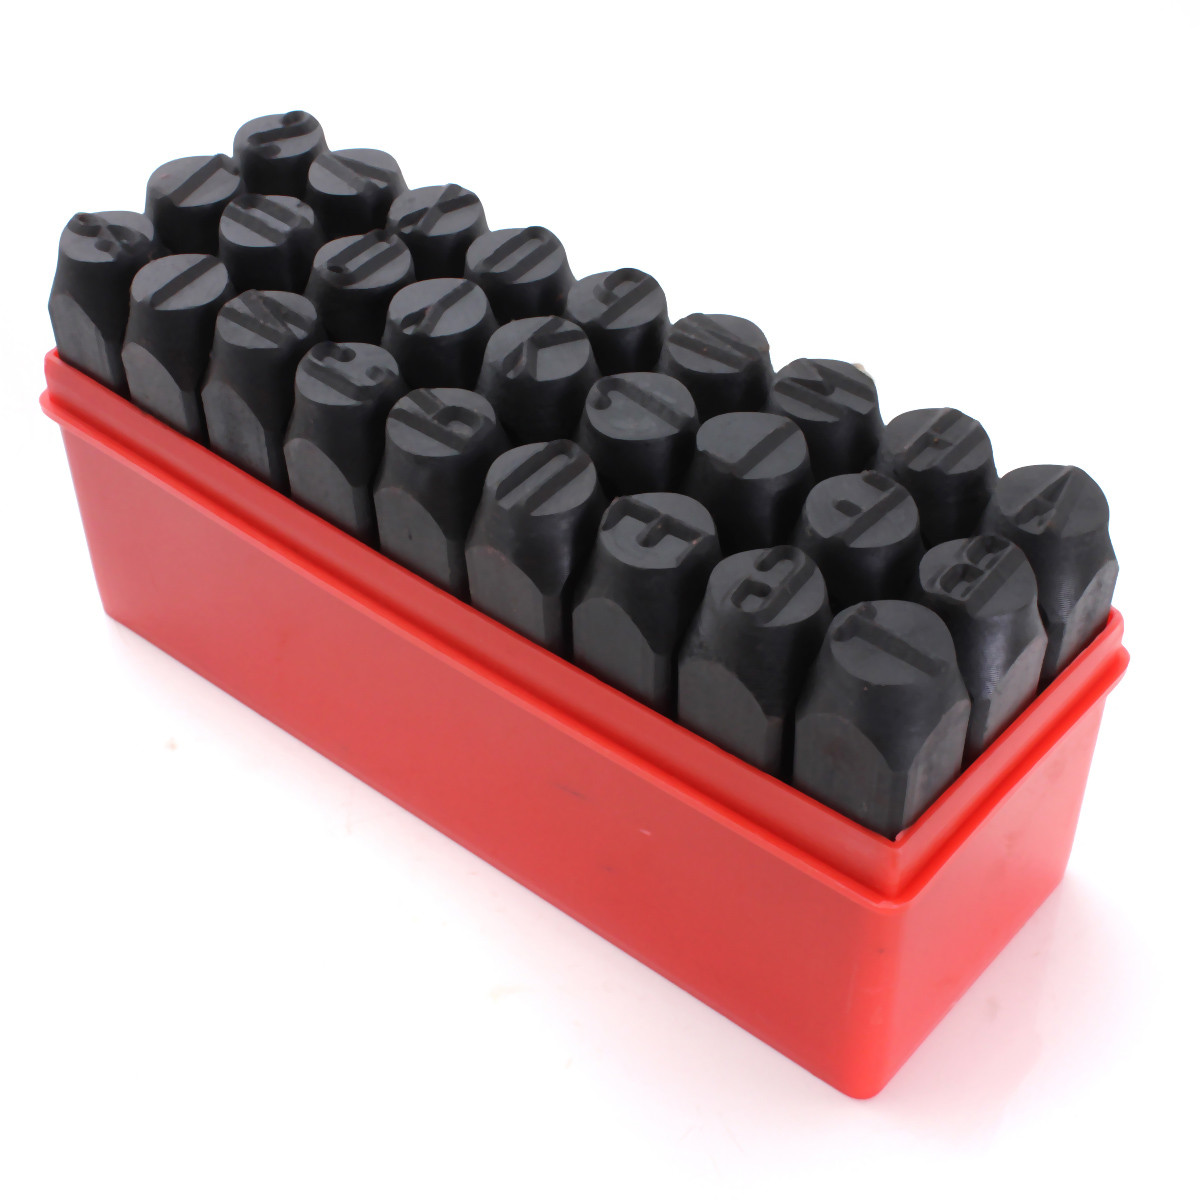 Stamps Letters Alphabet Set Punch Steel Metal Tool Case Craft Hot 2.5mm